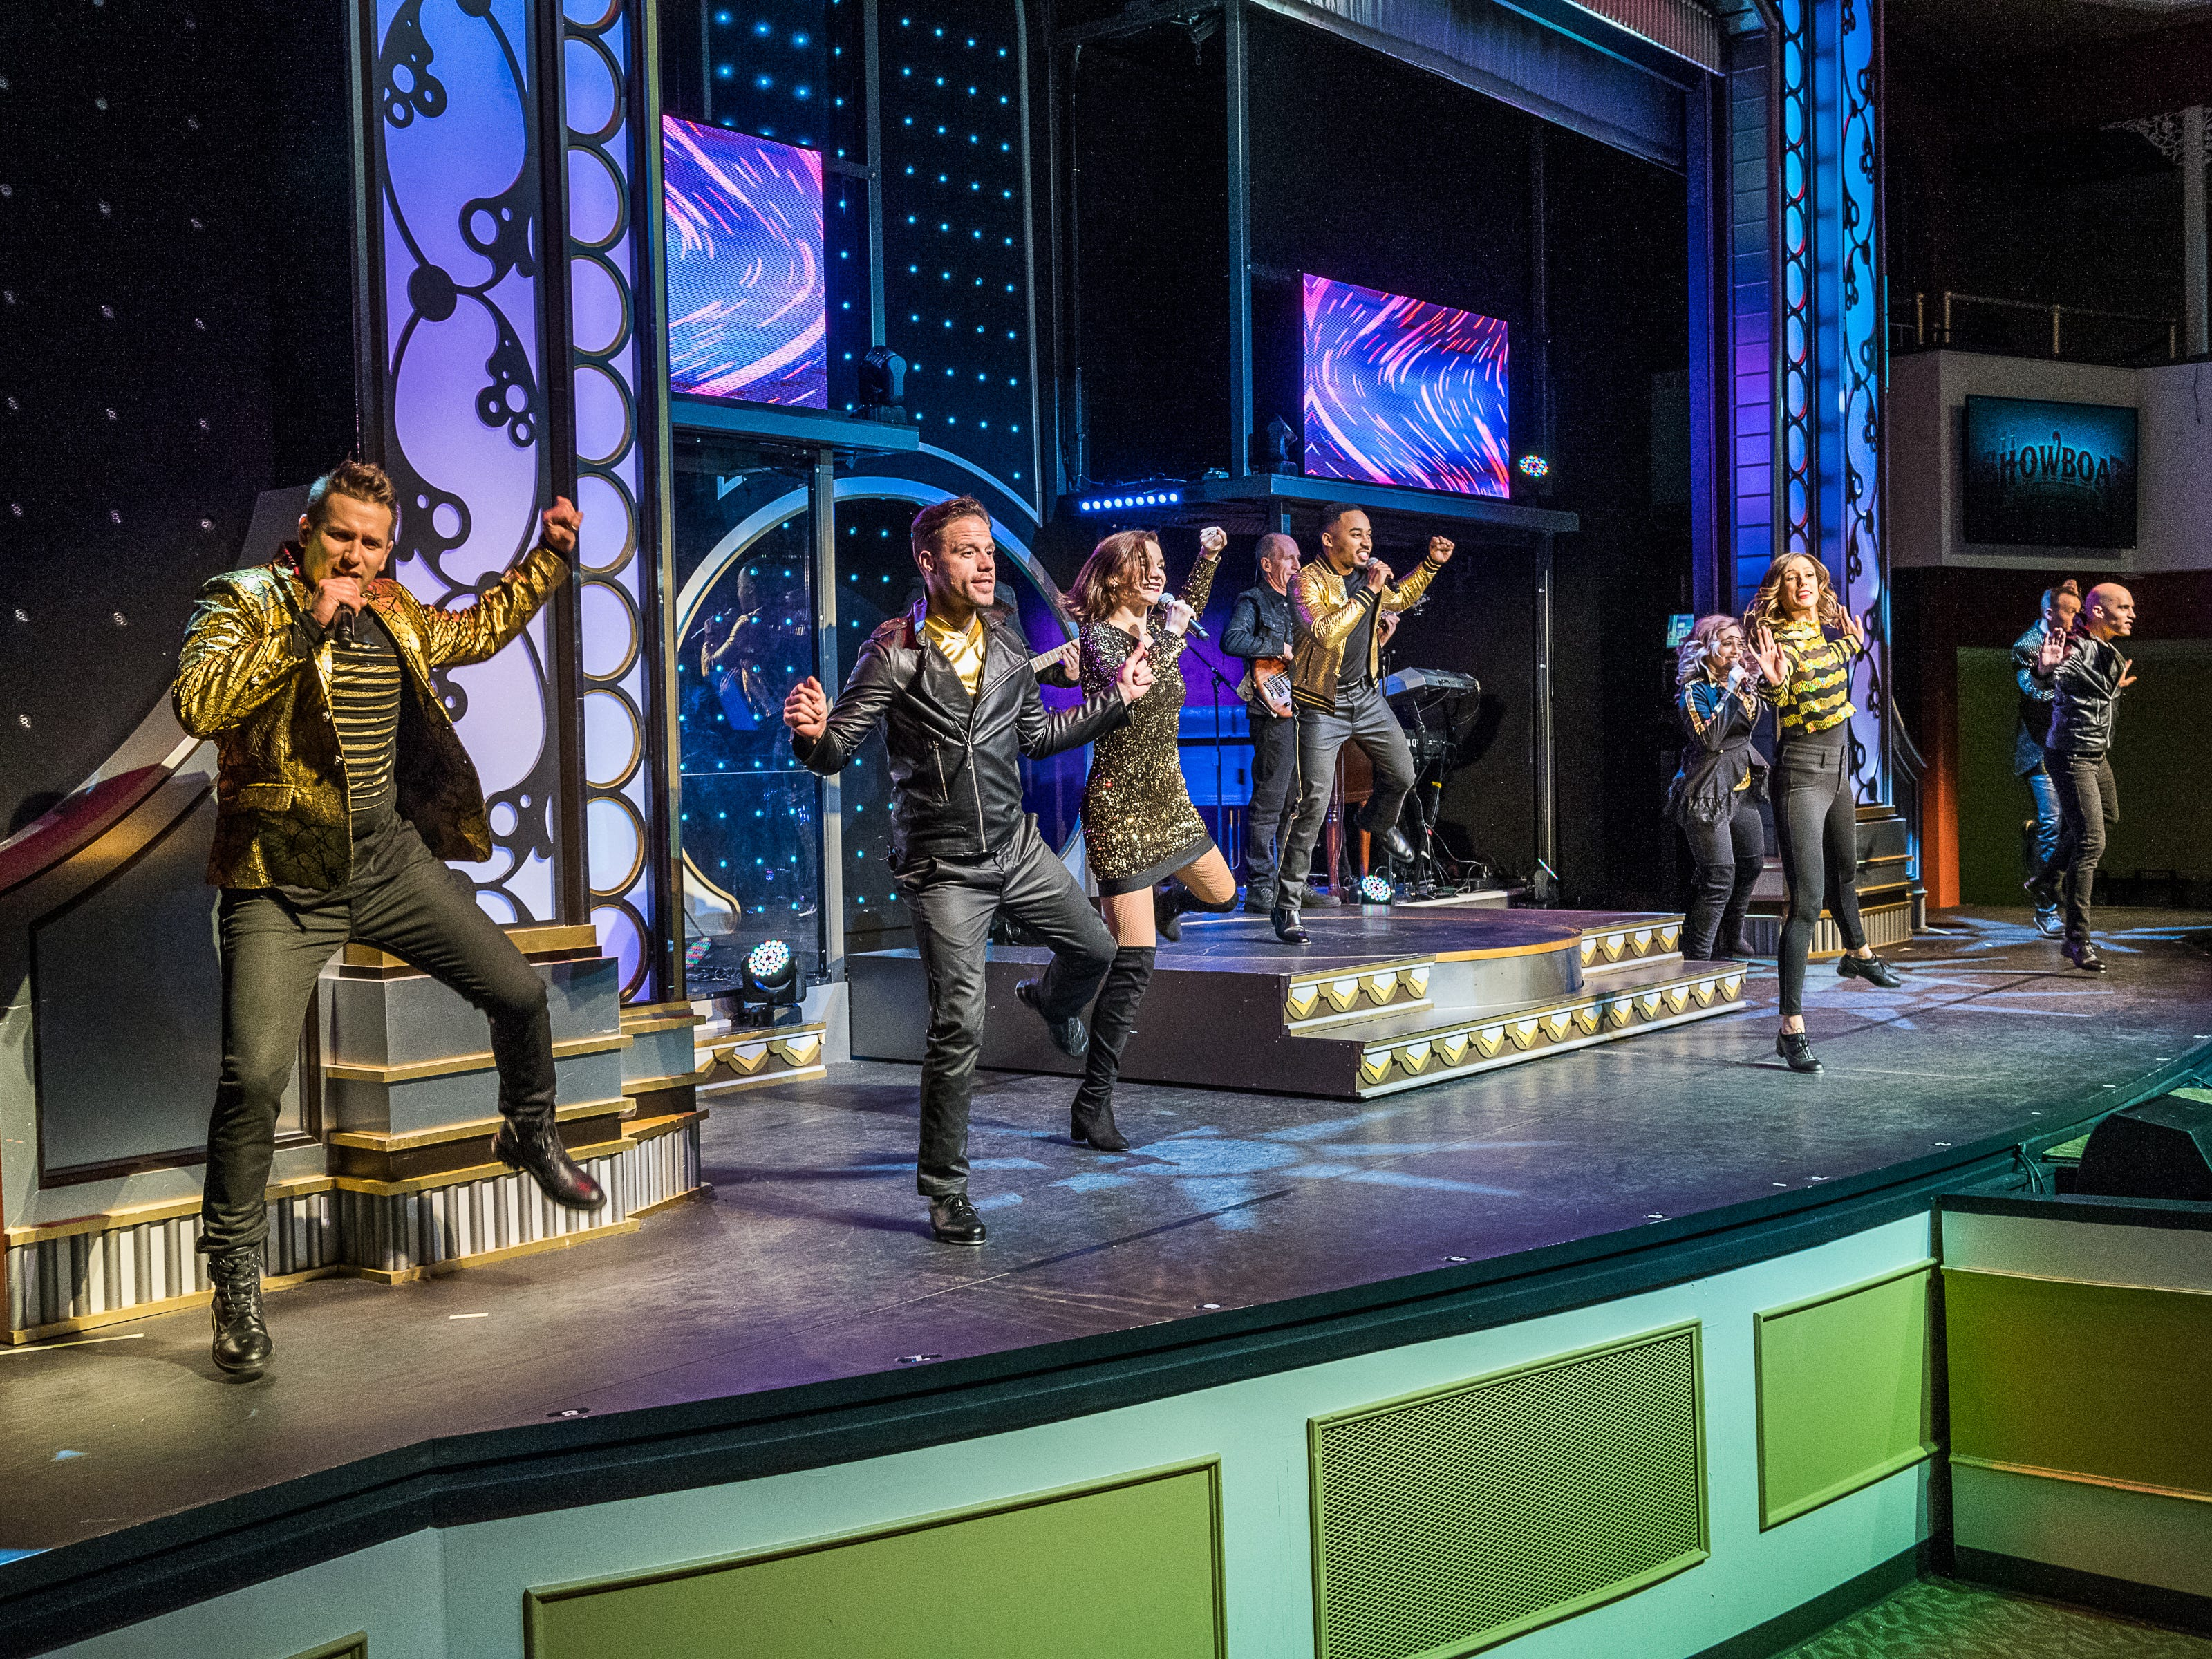 The show features an engaging and talented troupe of singers and dancers who perform everything from classic rock to classic movie tunes to, of course, Christmas classics.